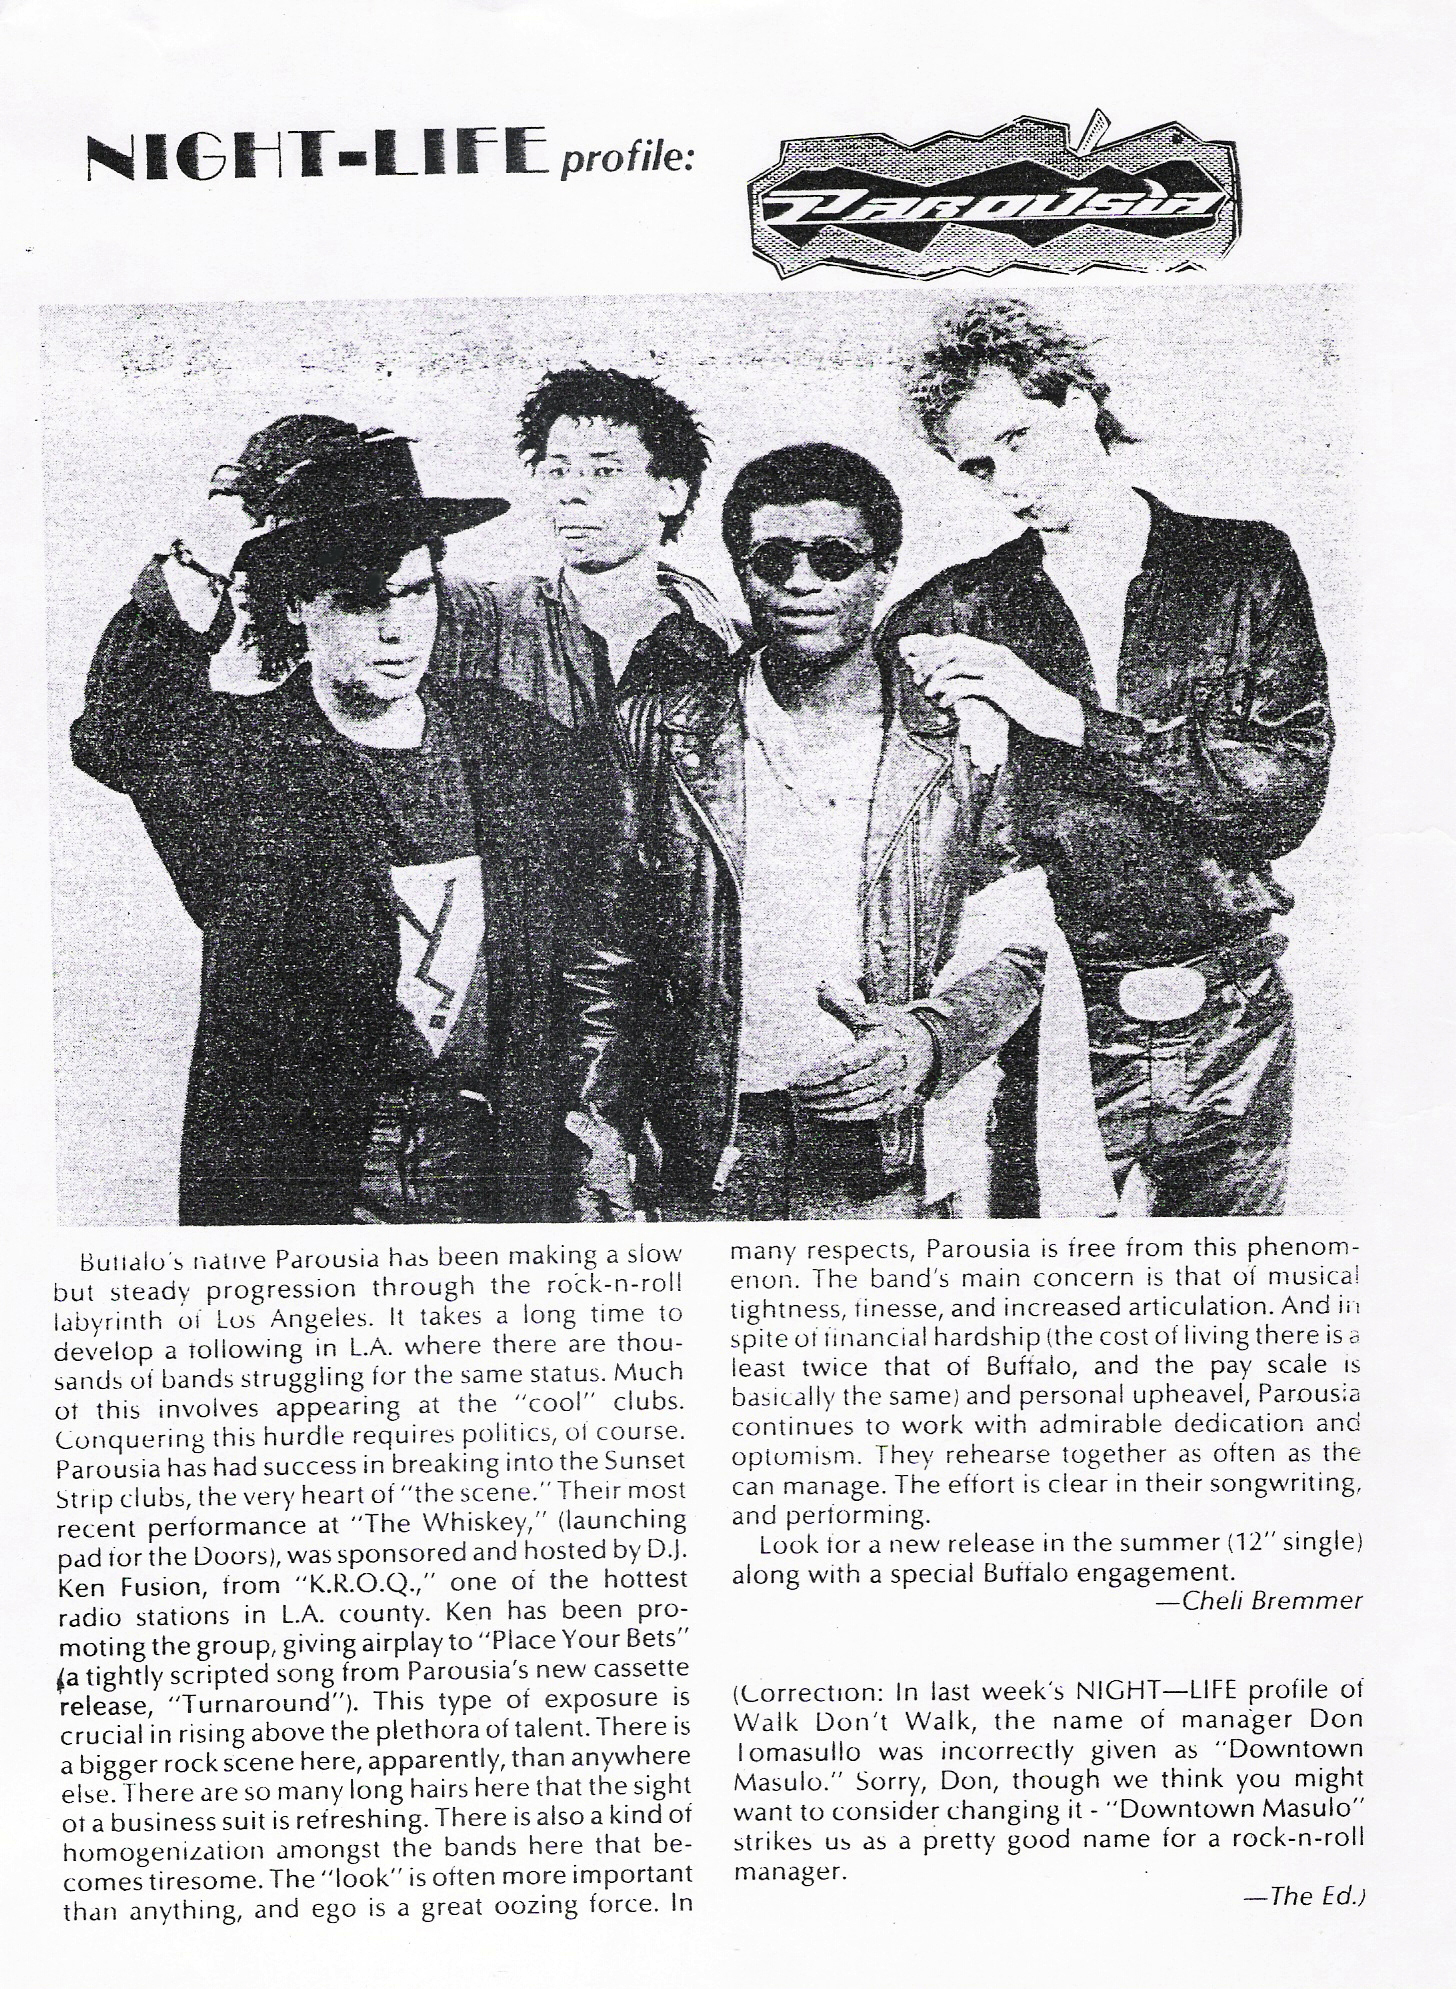 Article published in Buffalo Night-Life Magazine - December 19, 1988